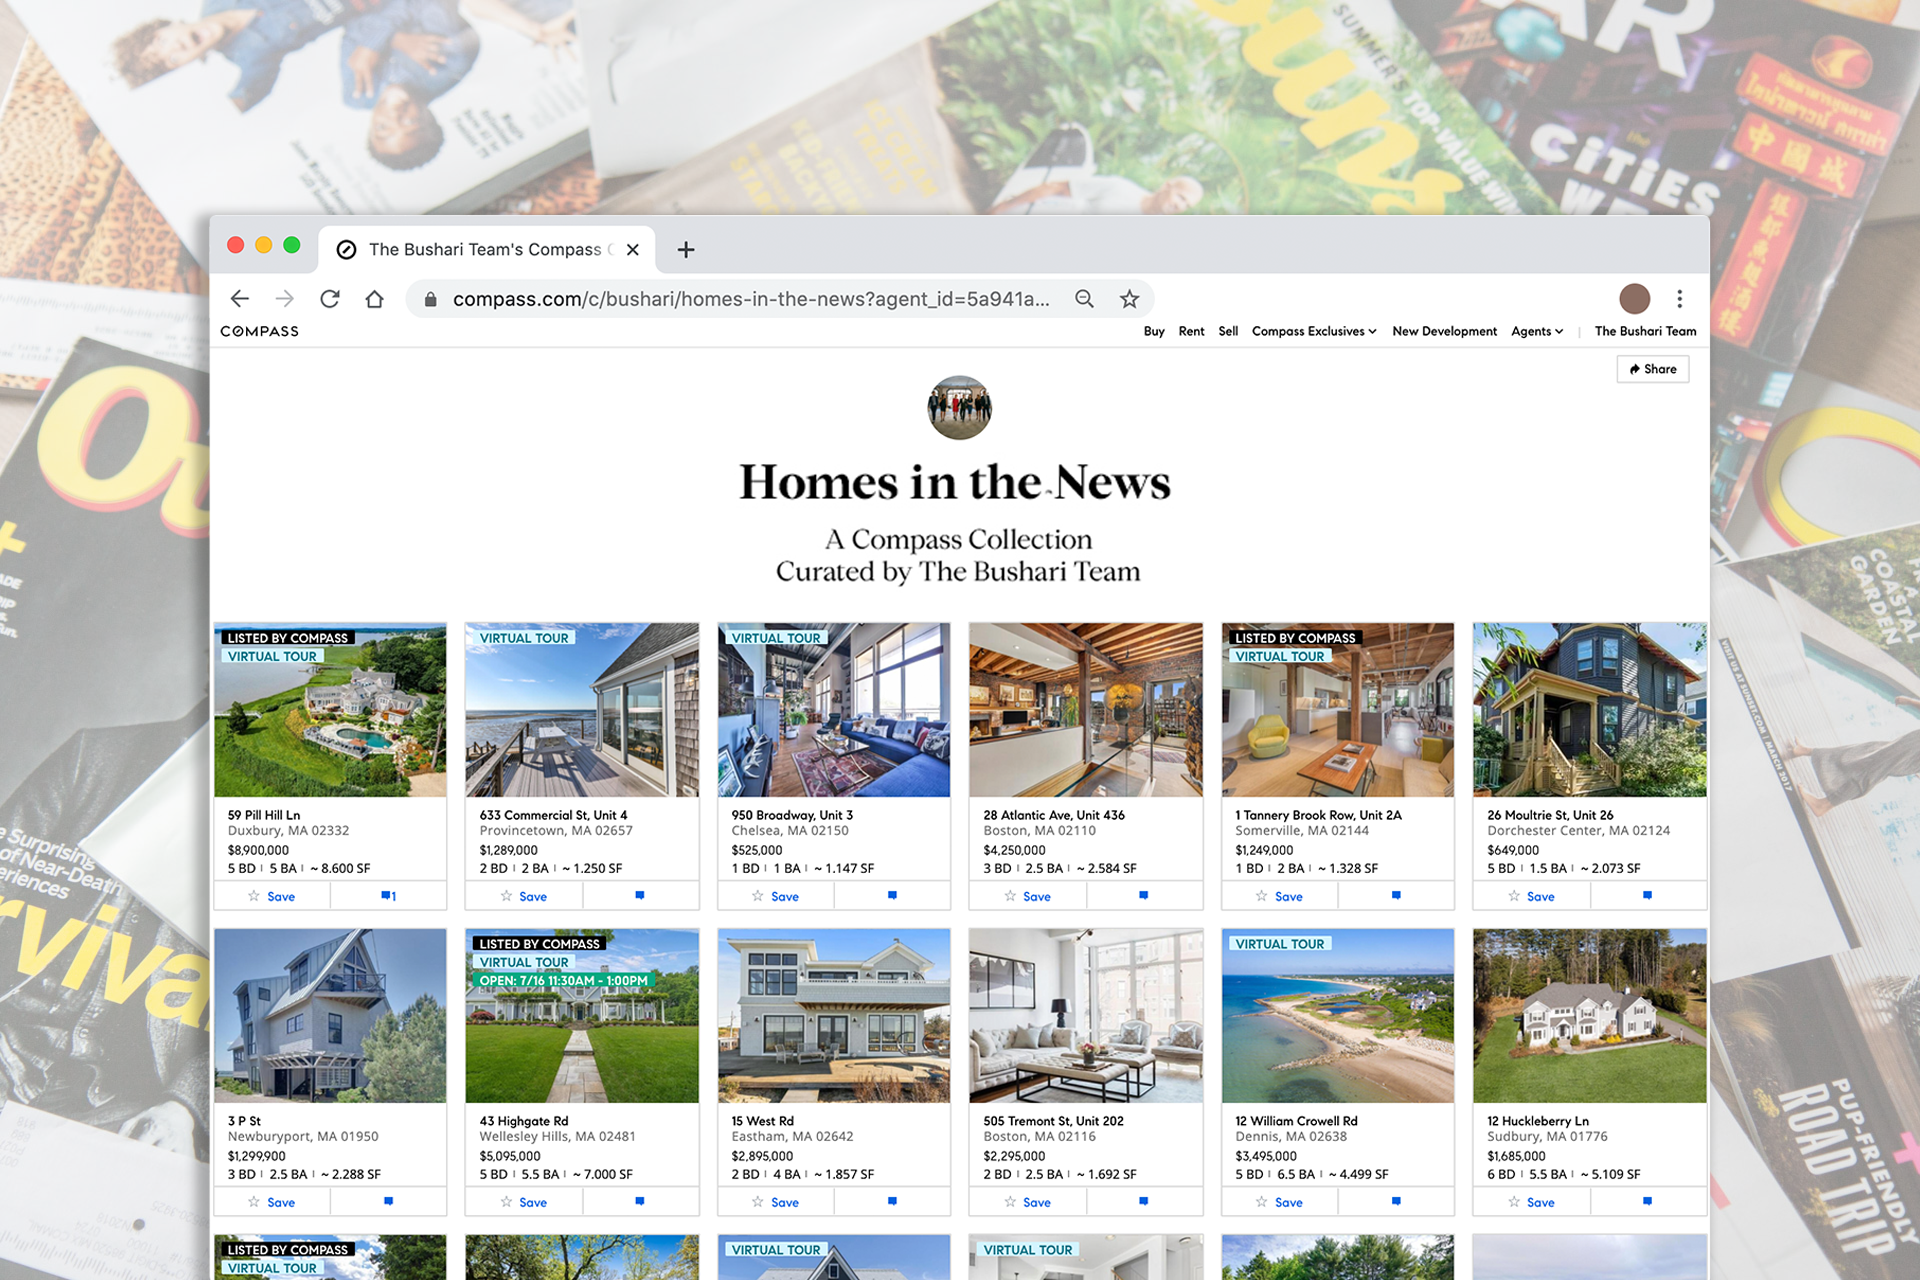 Compass Curated: A Collection of Homes Featured in the News